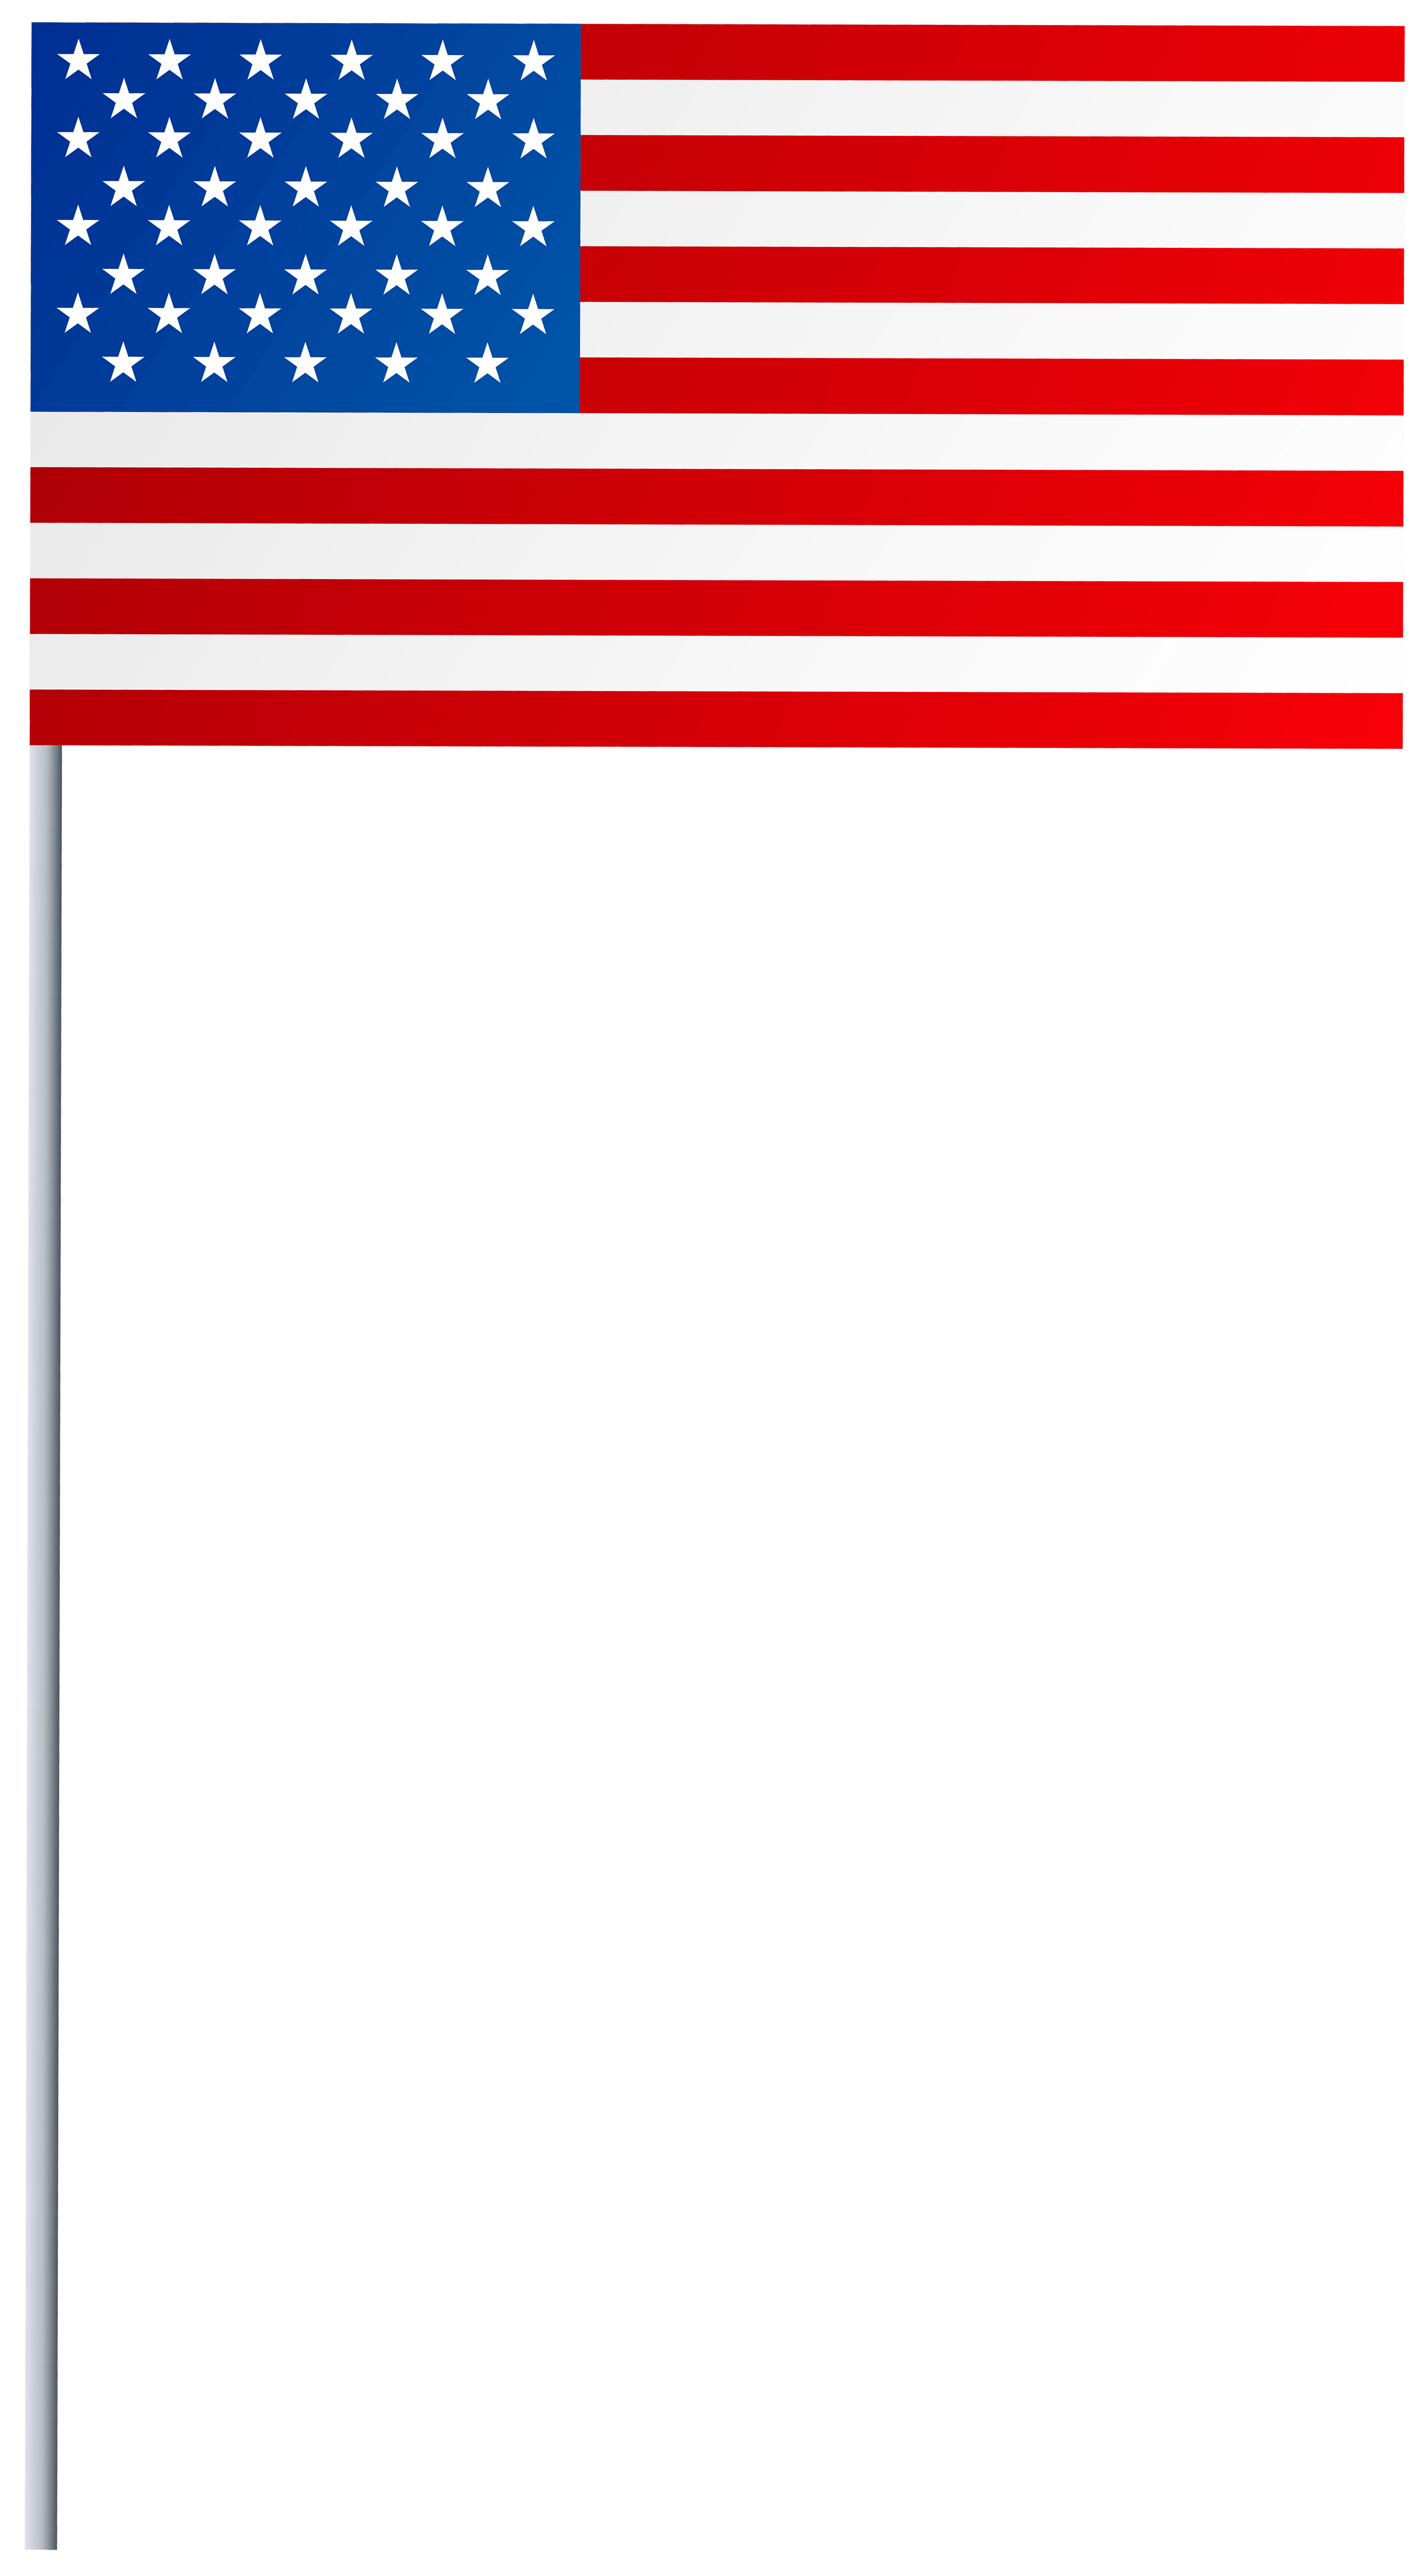 American Flag Clipart Png : american, clipart, Clipart, Image, Gallery, Yopriceville, High-Quality, Images, Transparent